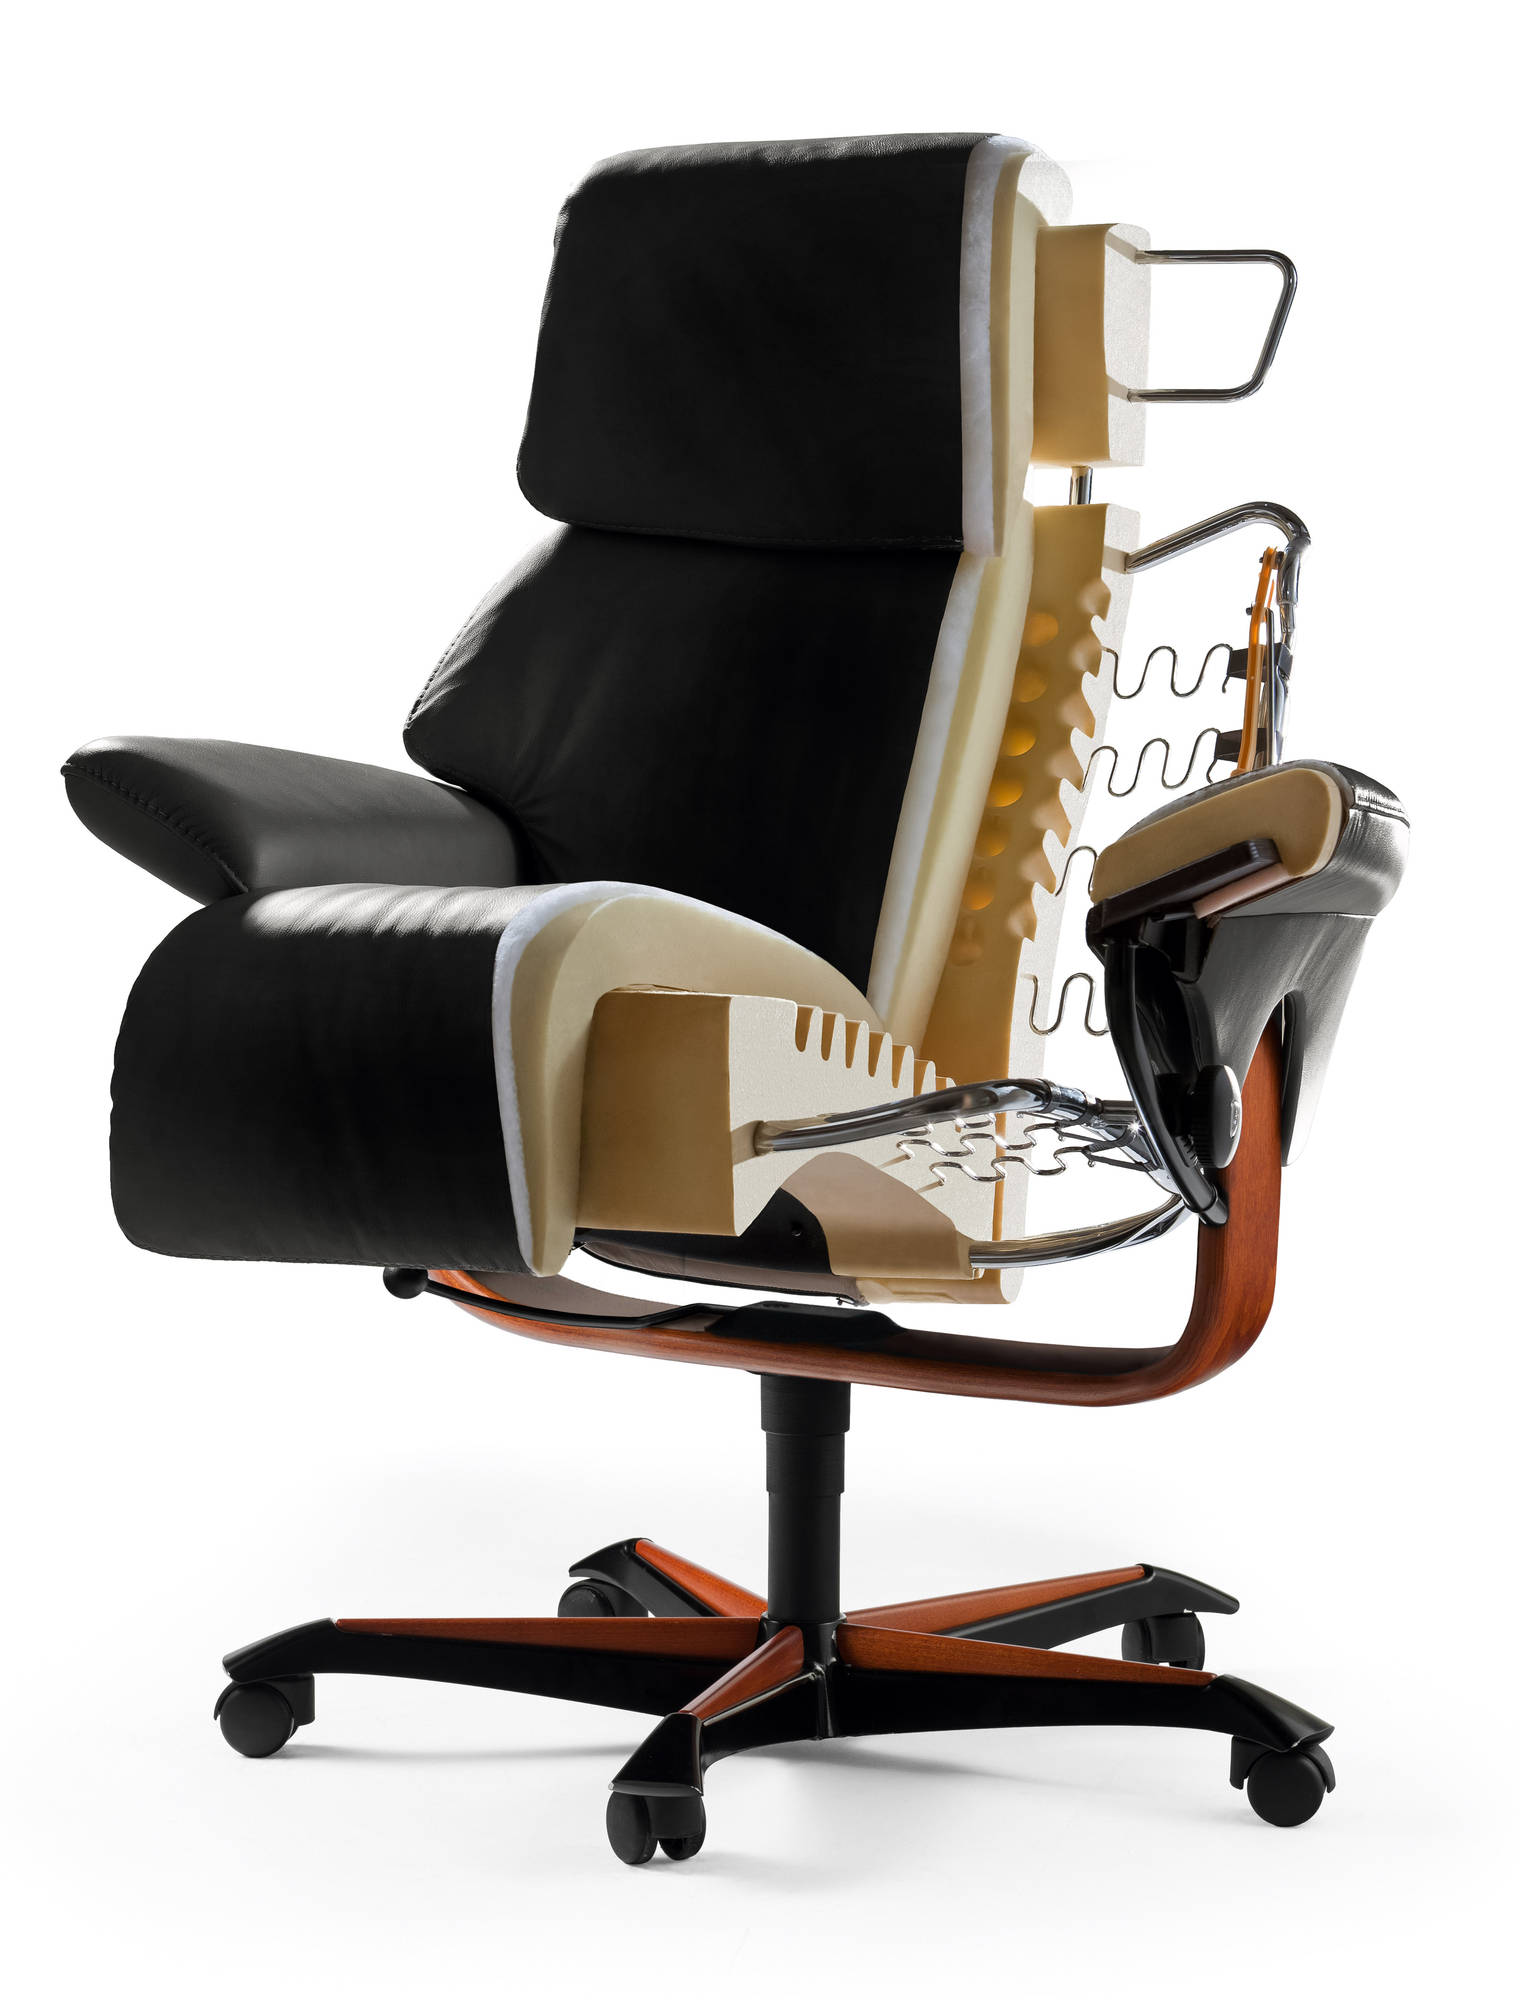 Office Mayfair - Stressless Technology